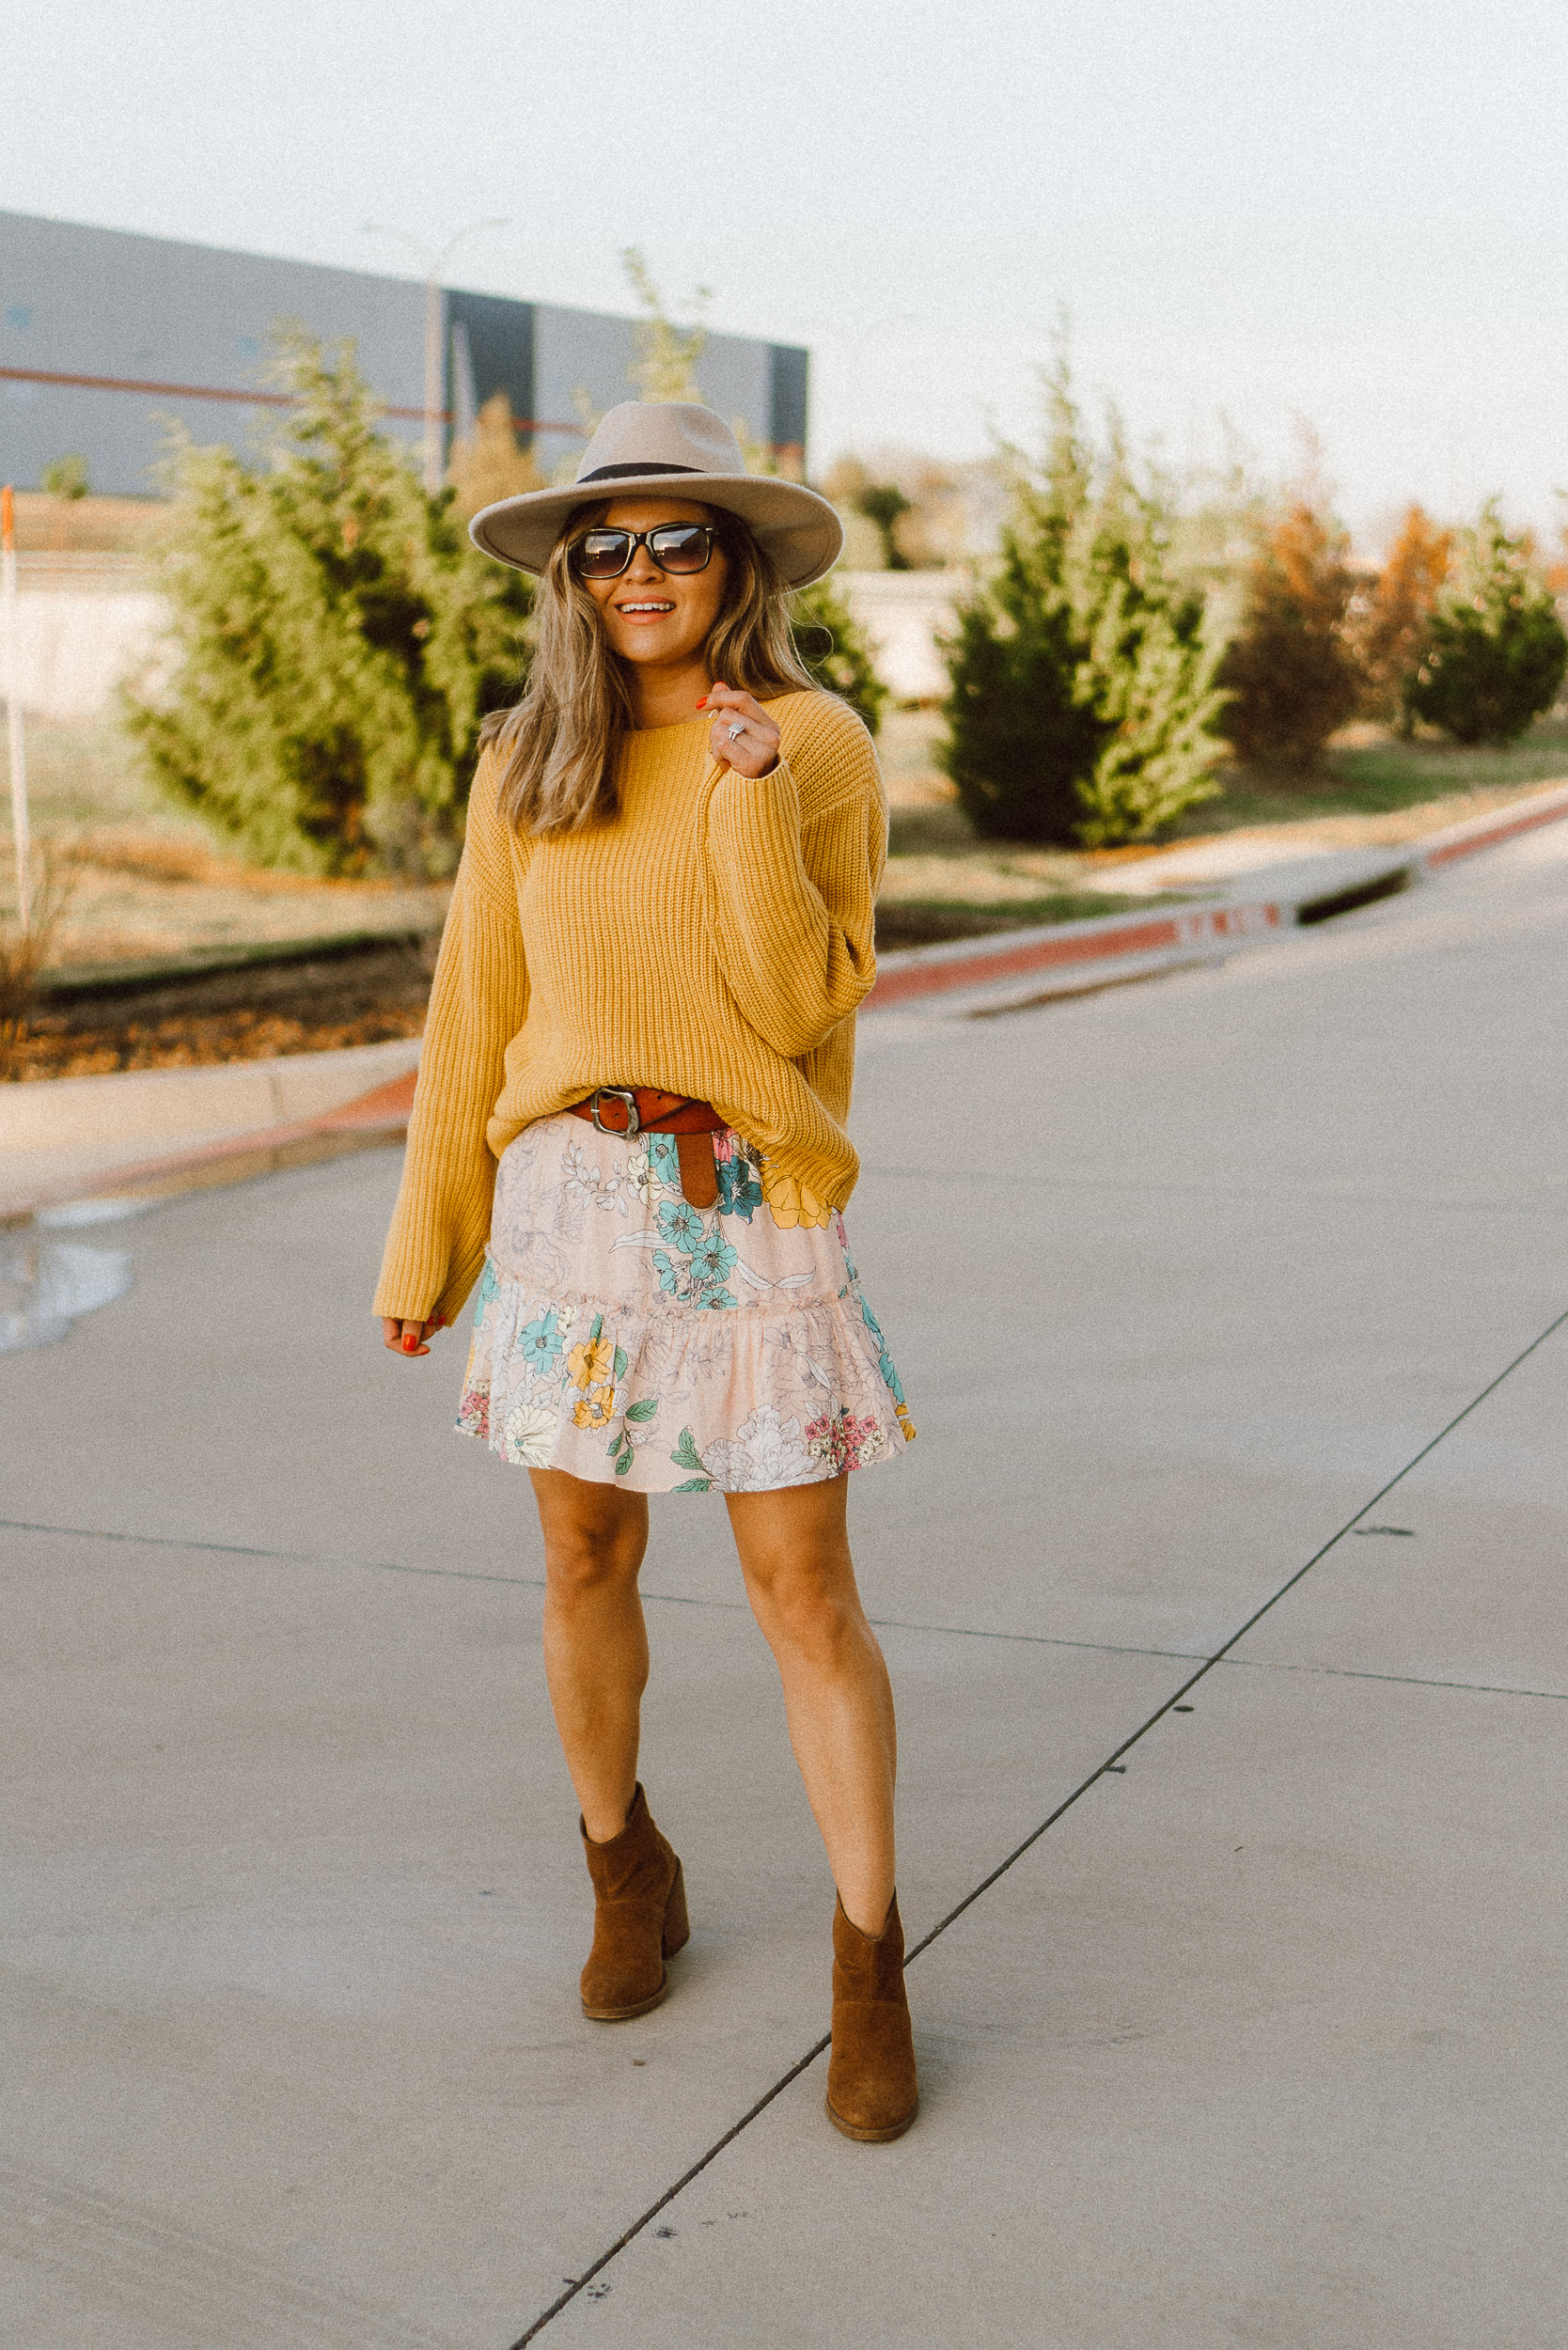 Sweaters + Skirts - for spring